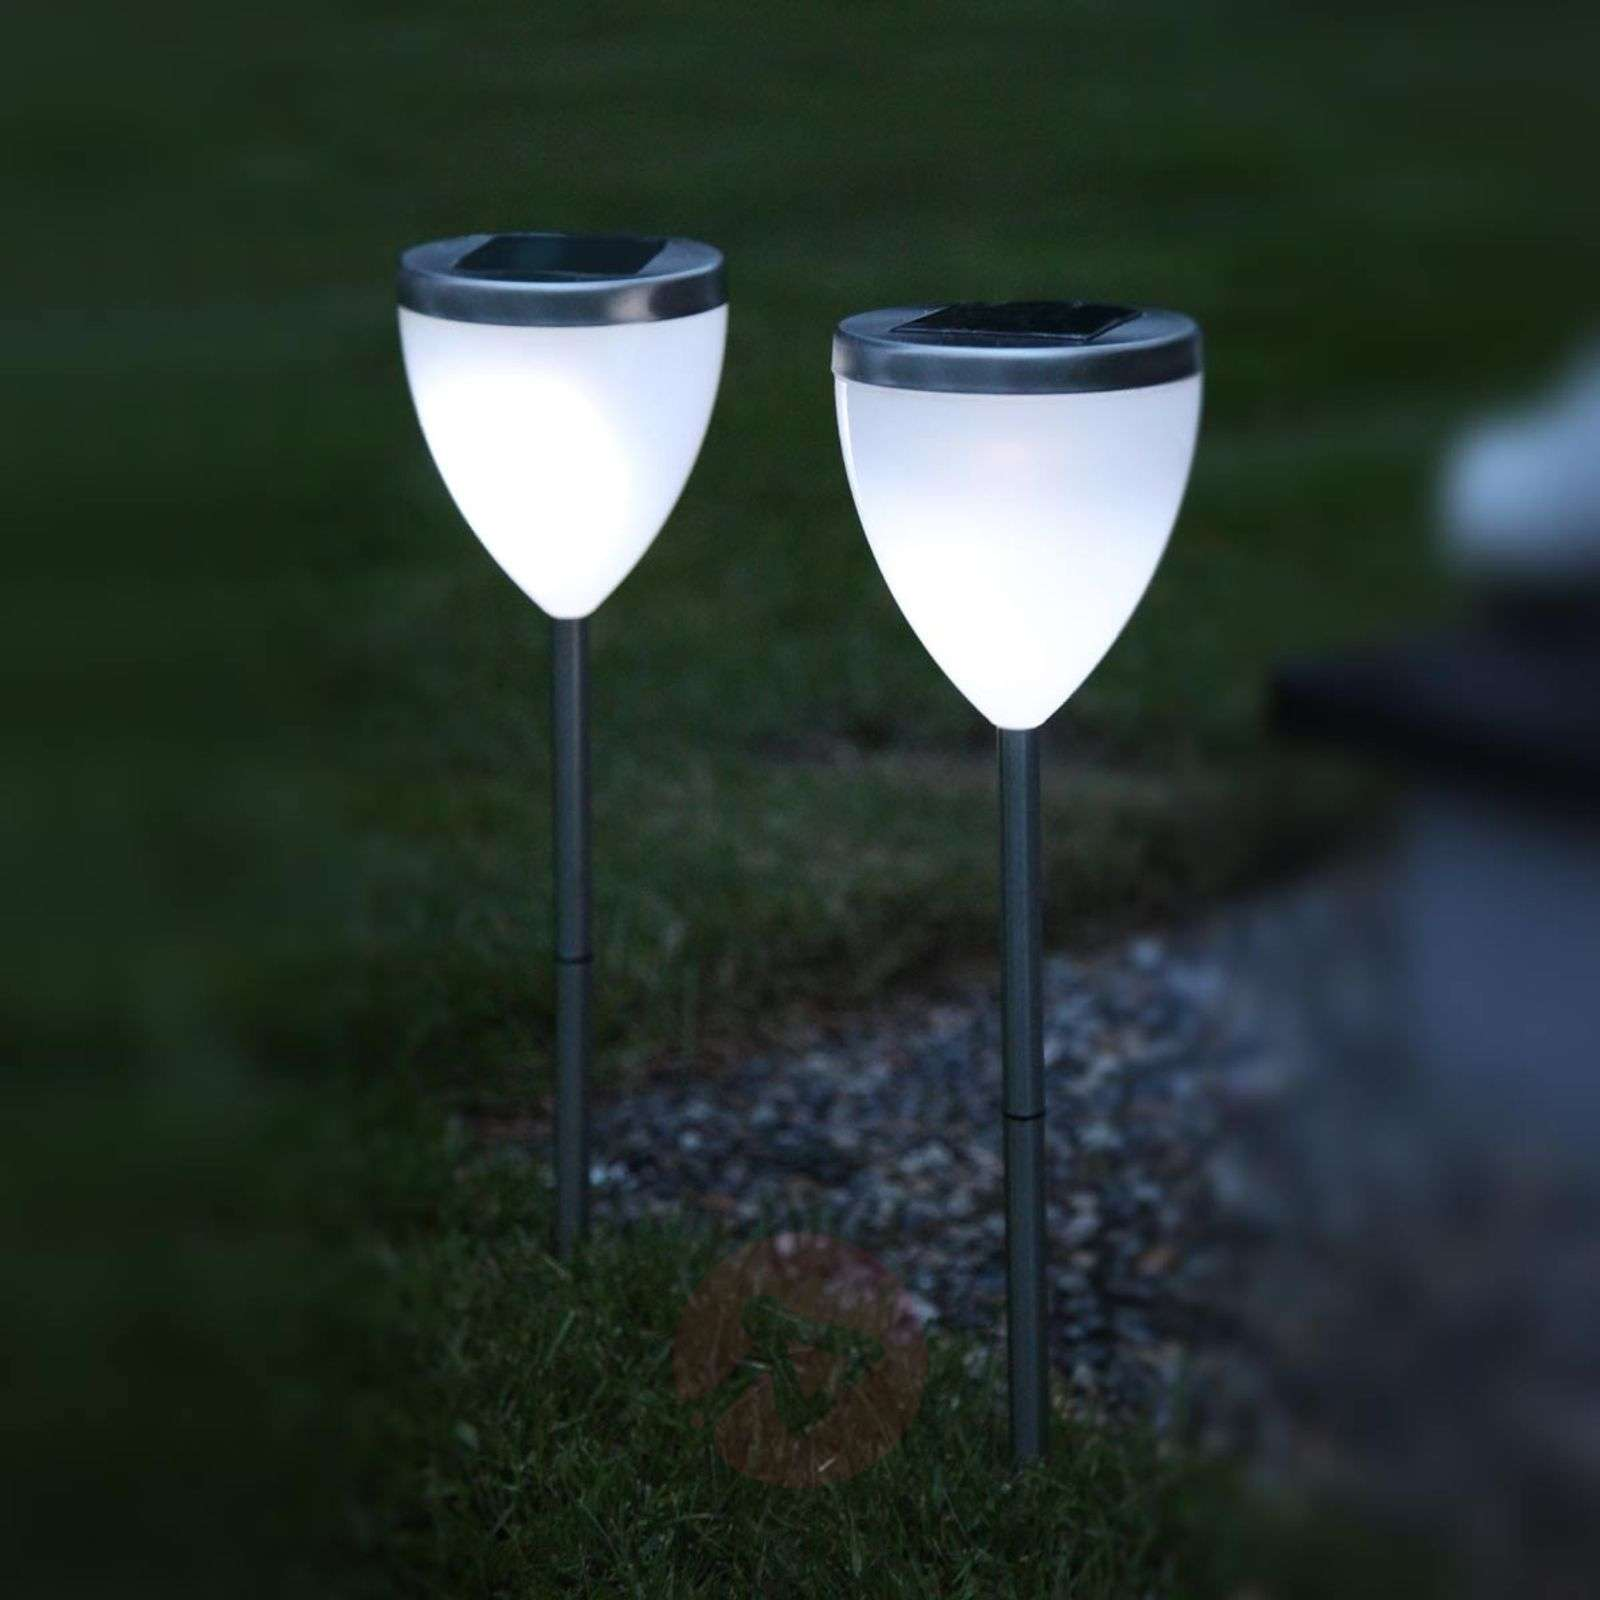 Decorative LED solar lamp Jannik set of 2-1522464-01